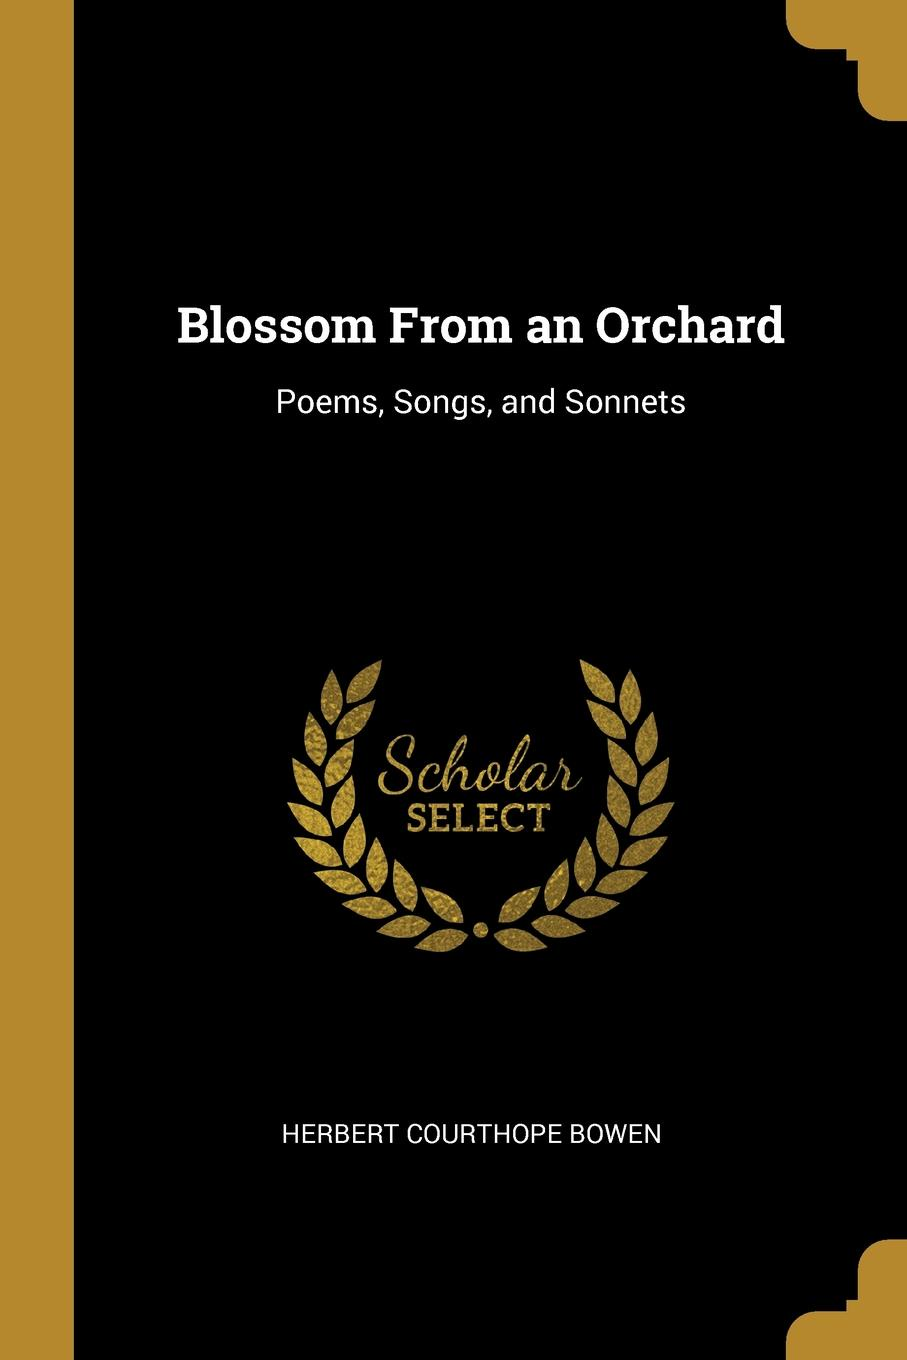 Blossom From an Orchard. Poems, Songs, and Sonnets